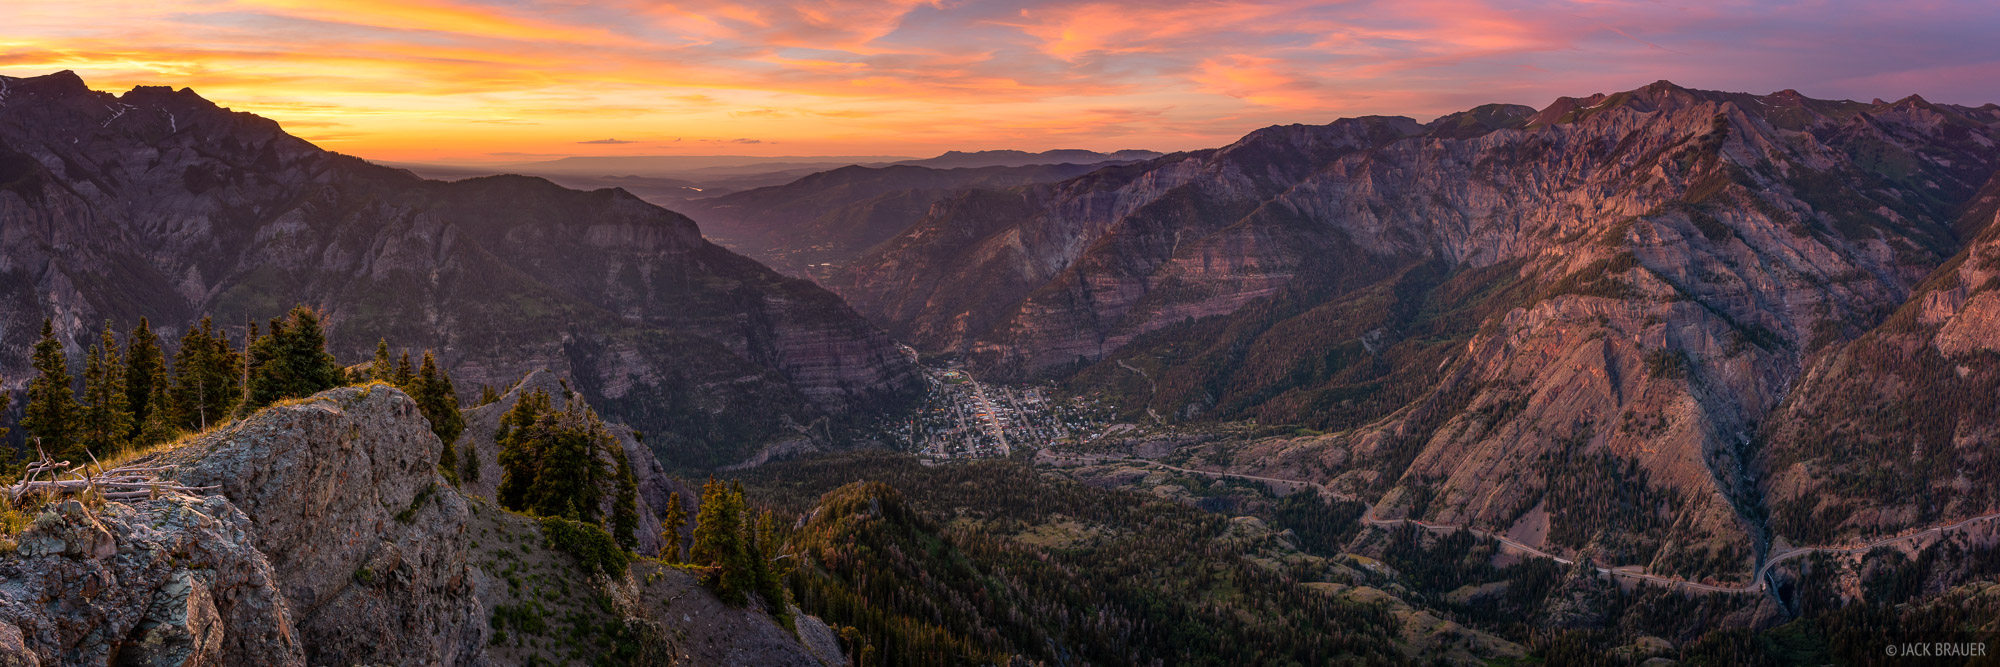 Colorado, Ouray, San Juan Mountains, panorama, sunset